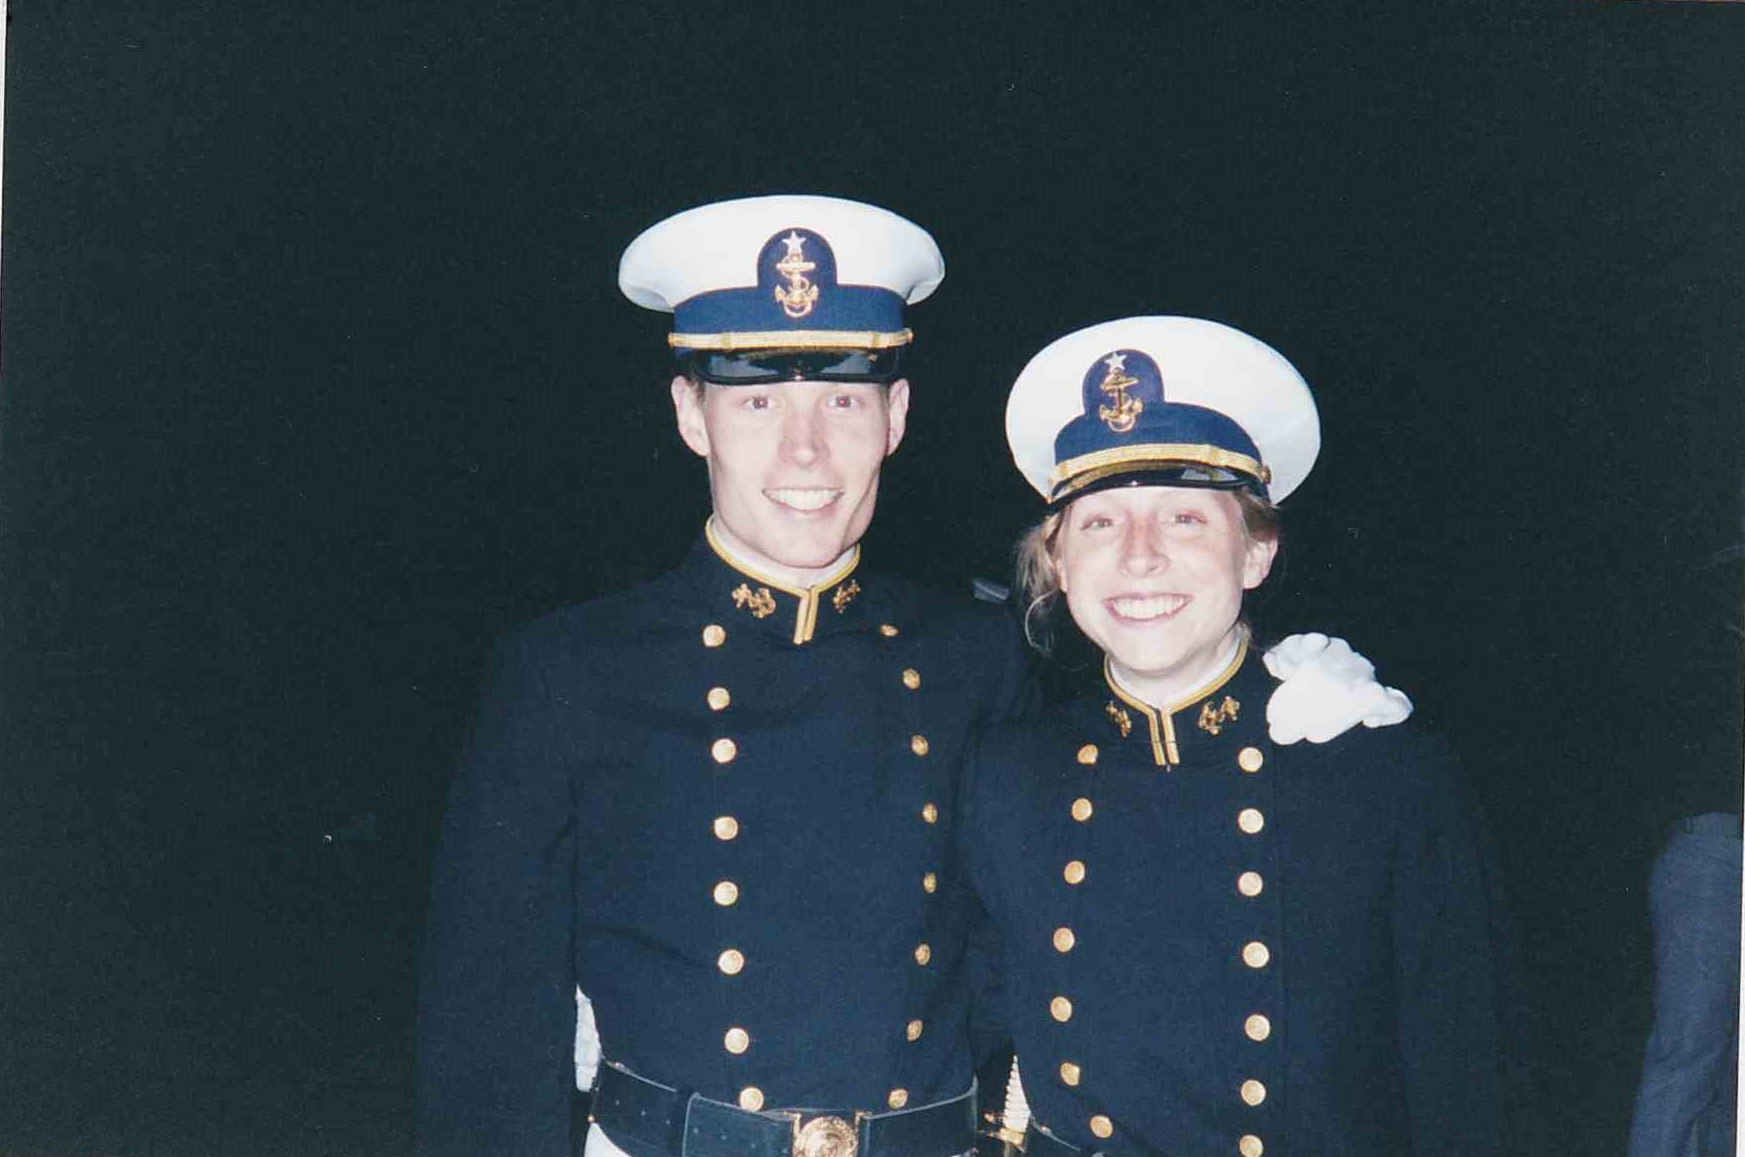 The Hiigels, pictured in their drill uniforms, during their senior year at the Coast Guard Academy